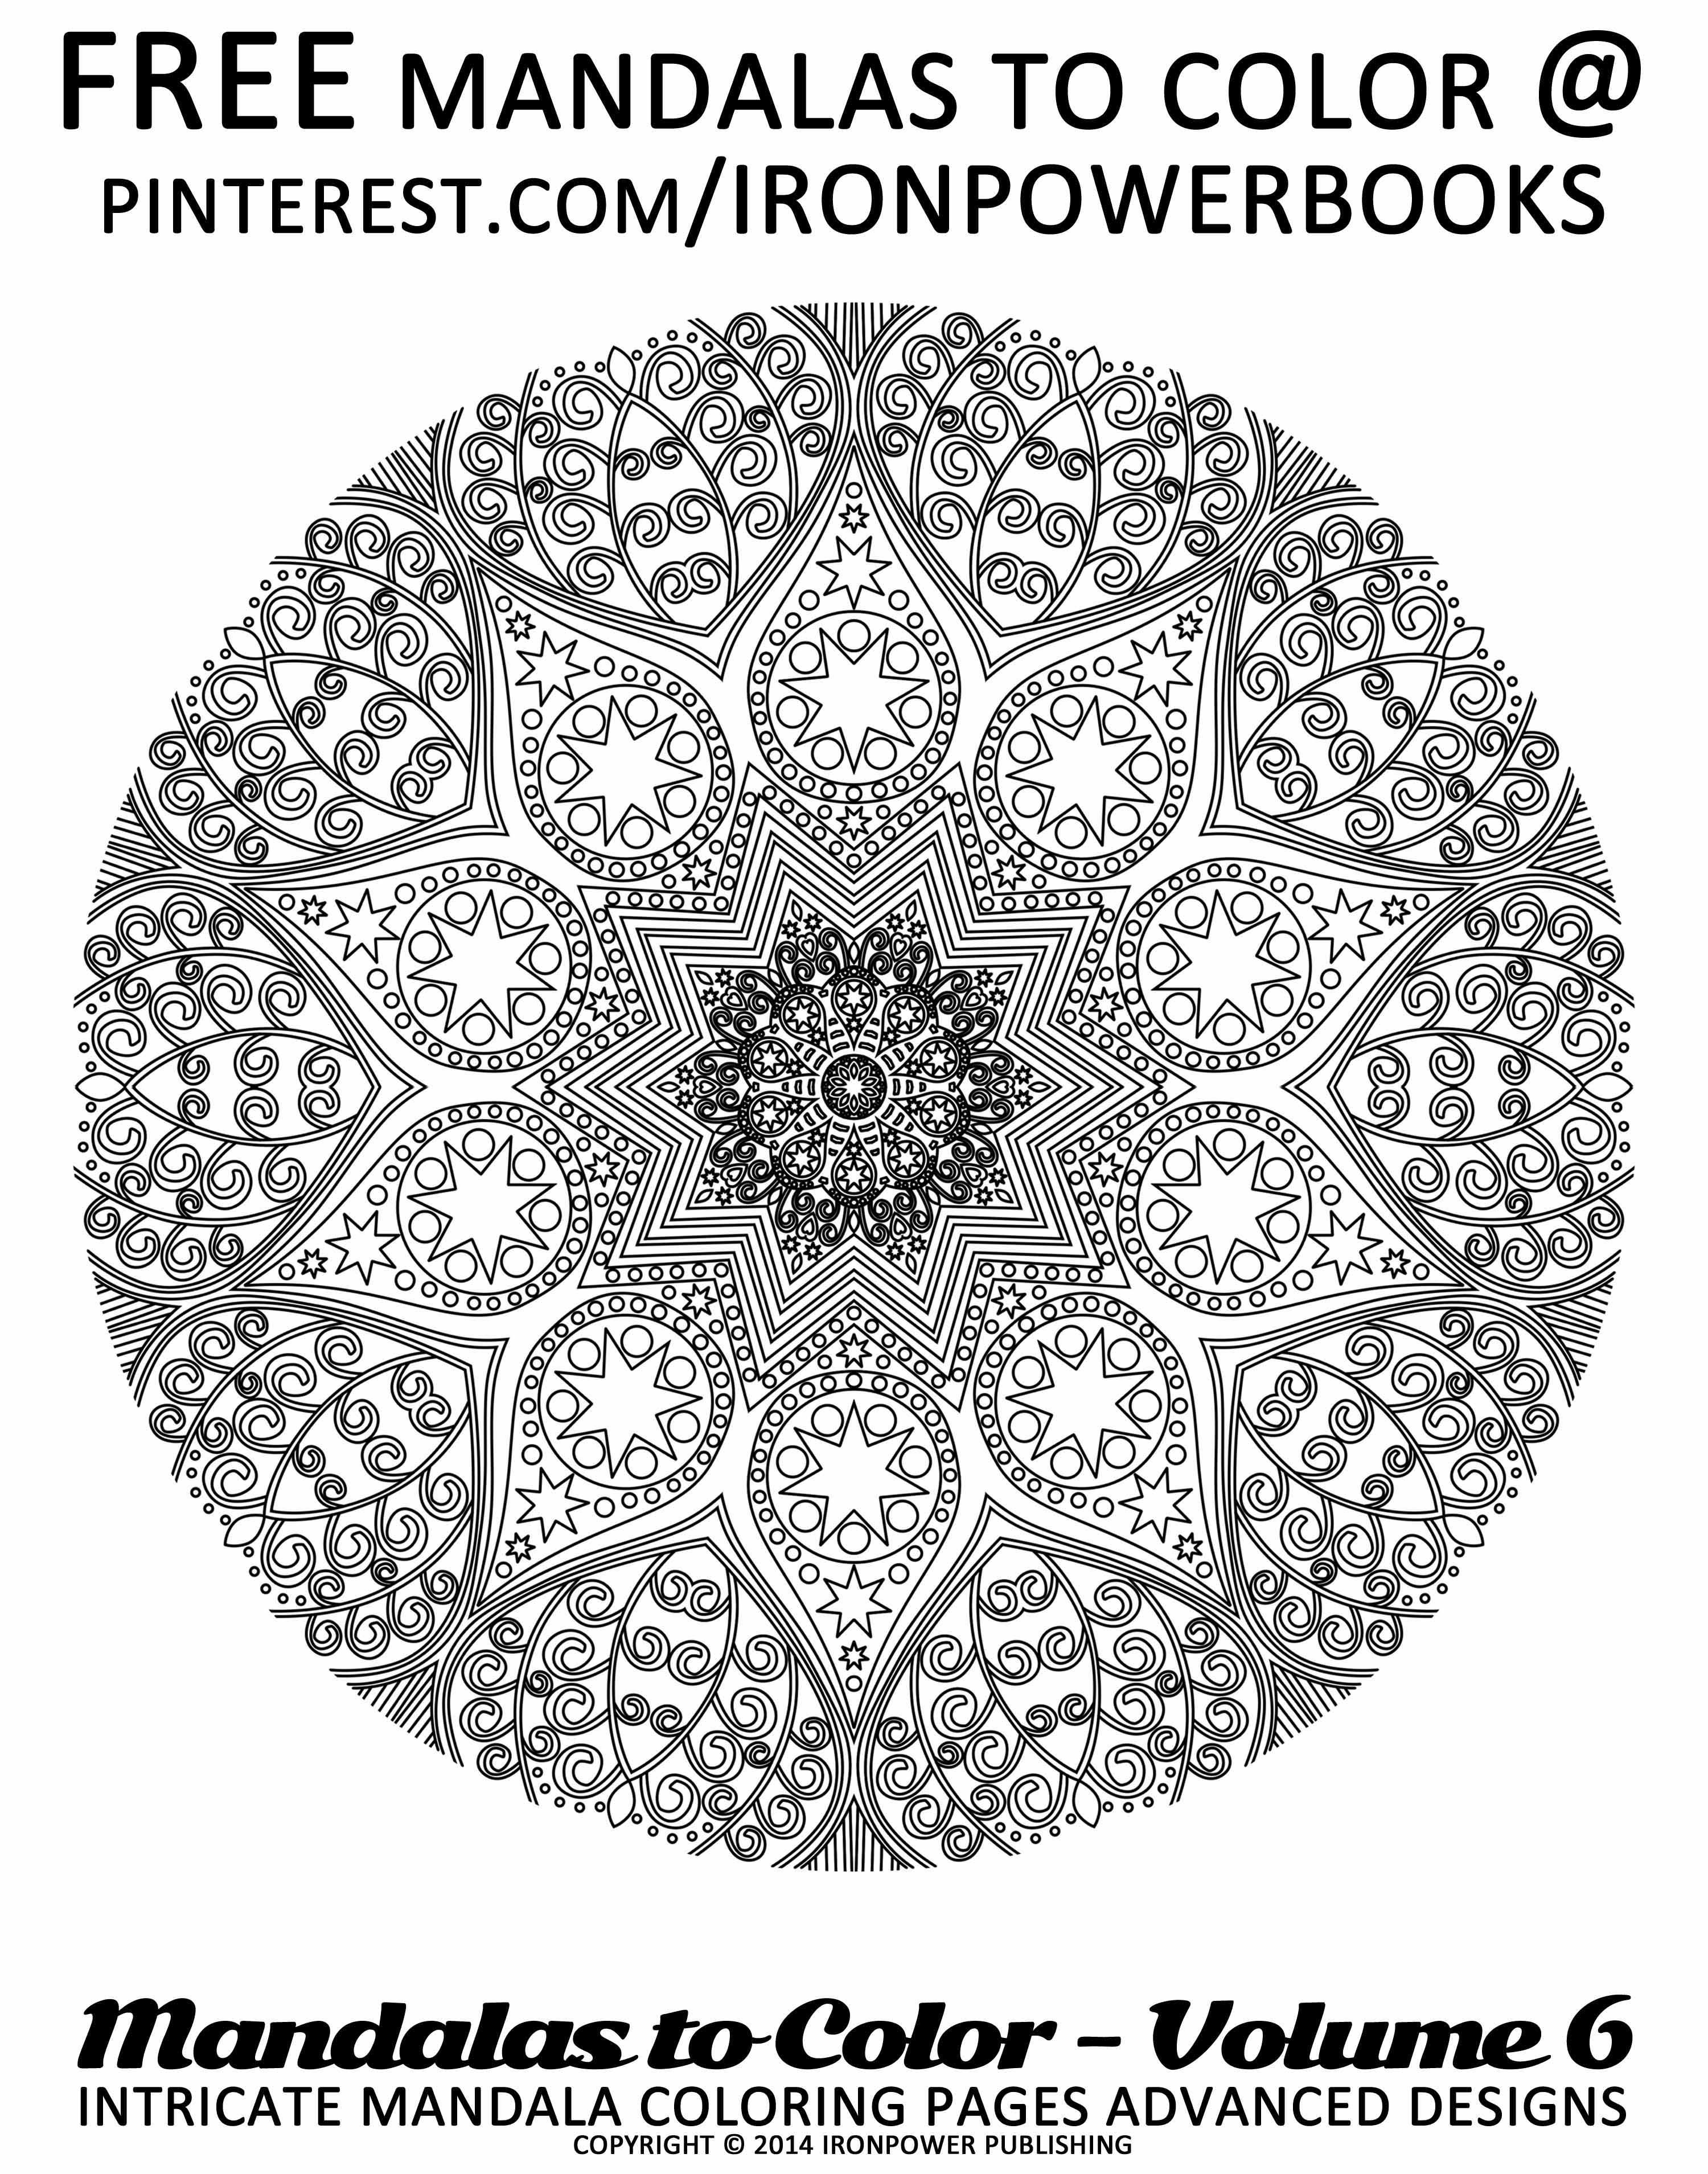 Printable Coloring Pages For Adults For More Free Mandala Coloring Pages Ironpowerbooks Hi Mommy2 Mandala Coloring Pages Mandala Coloring Coloring Pages